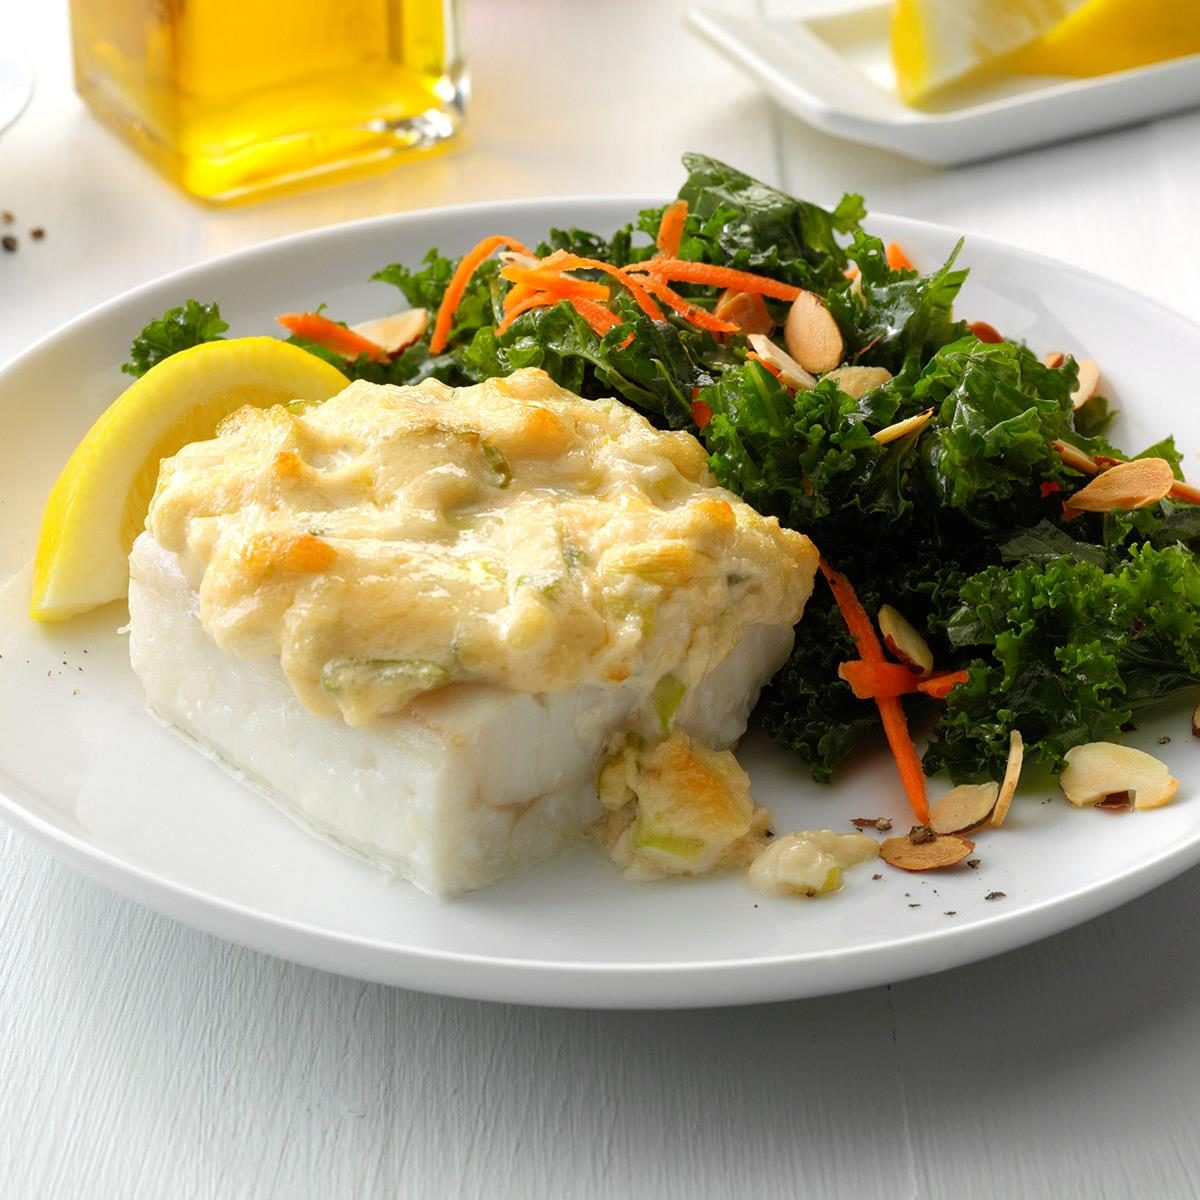 Day 16: Parmesan Baked Cod